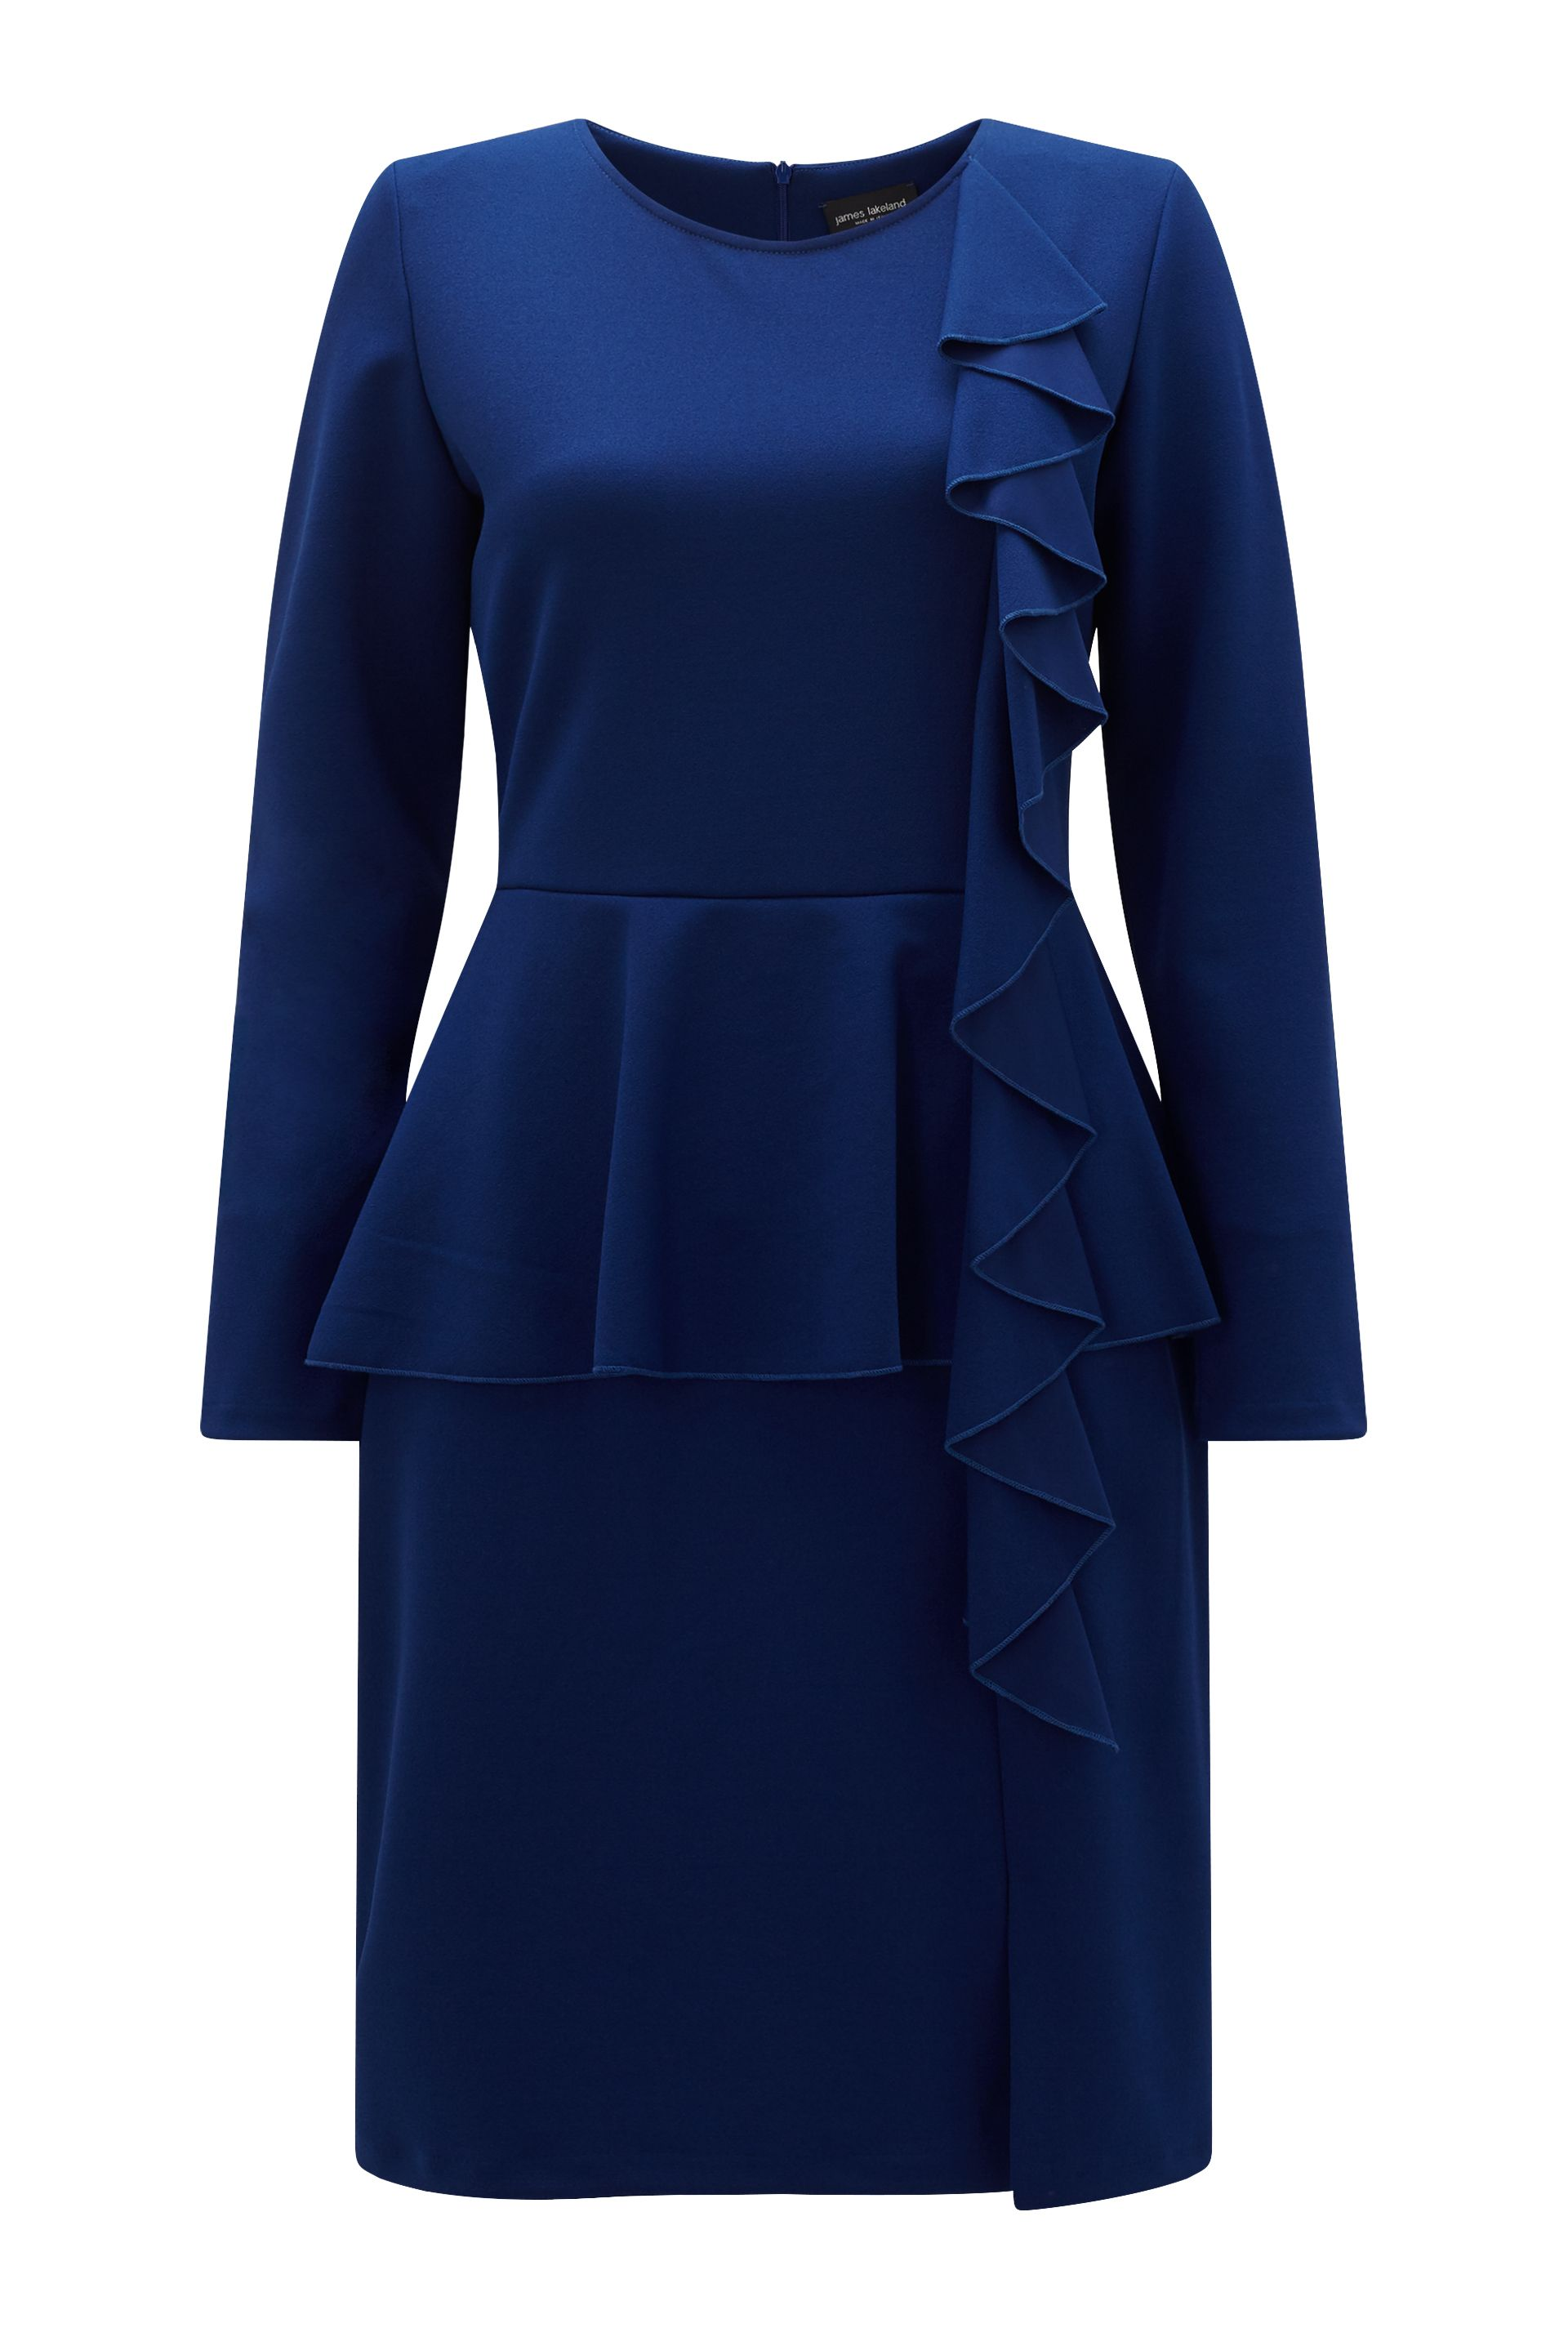 James Lakeland Ruffle Peplum Dress, Blue